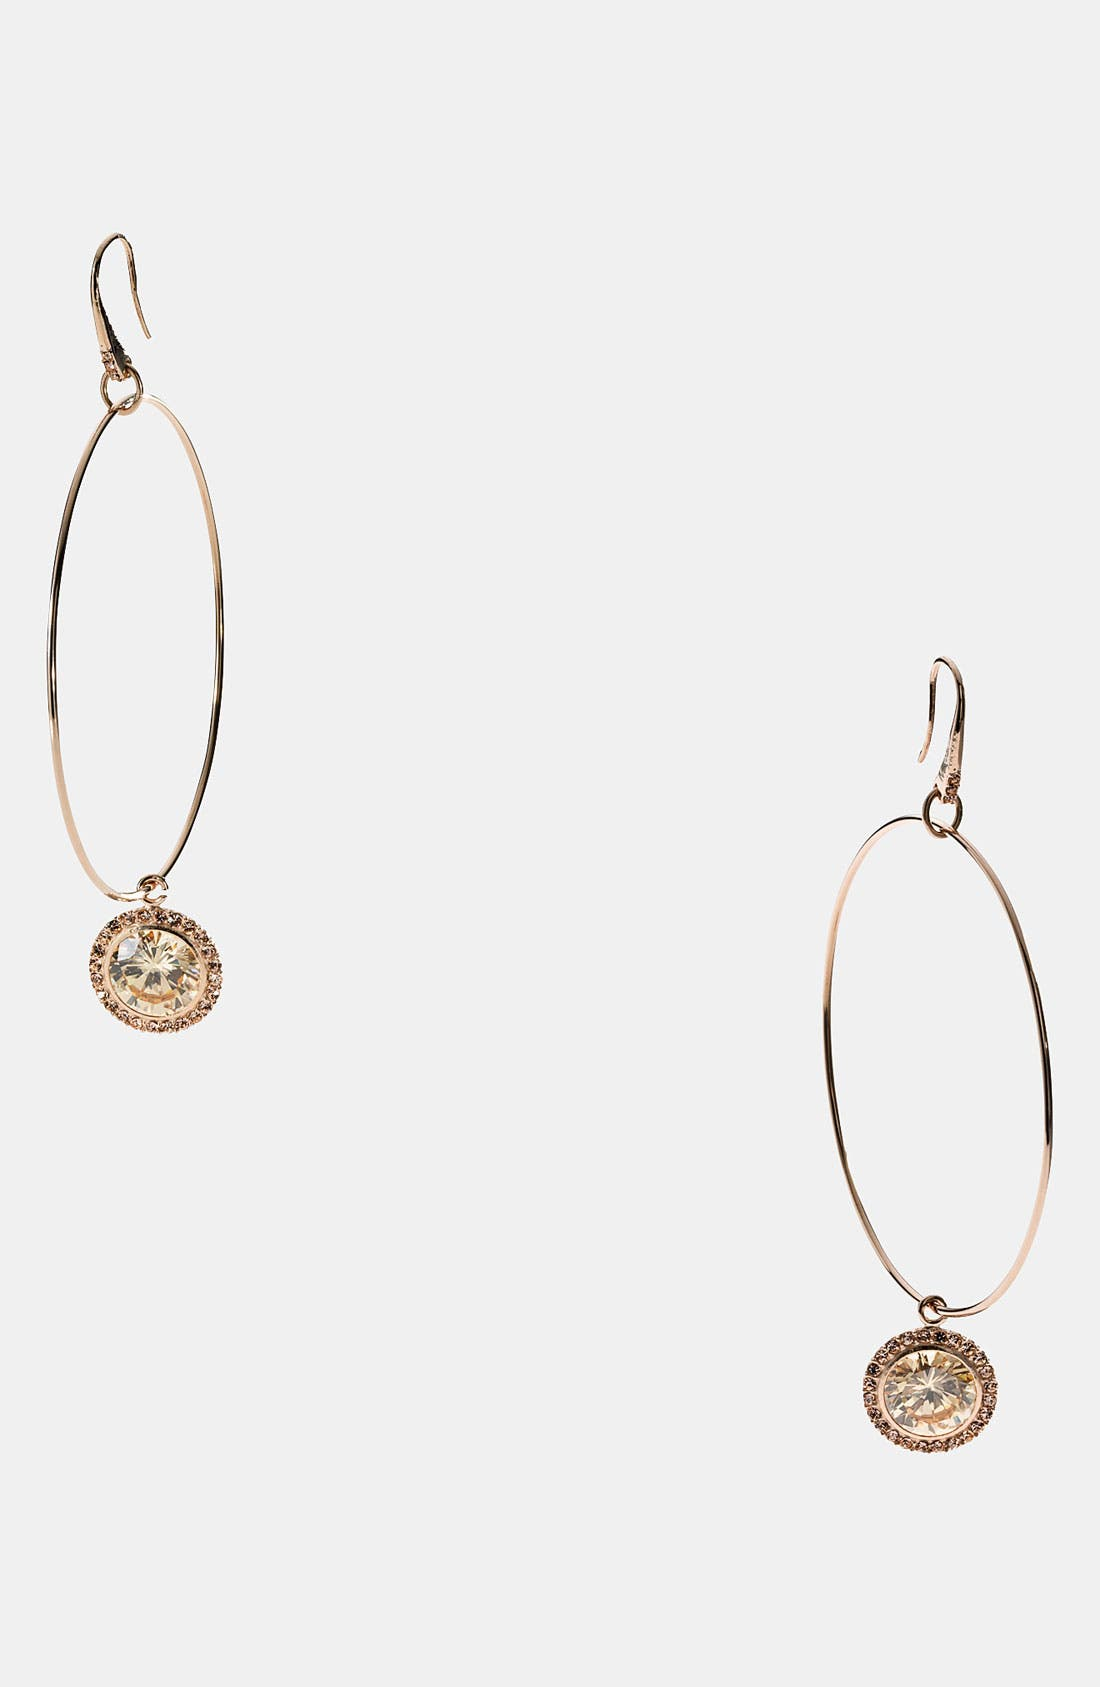 Main Image - Michael Kors 'Brilliance' Hoop Drop Earrings